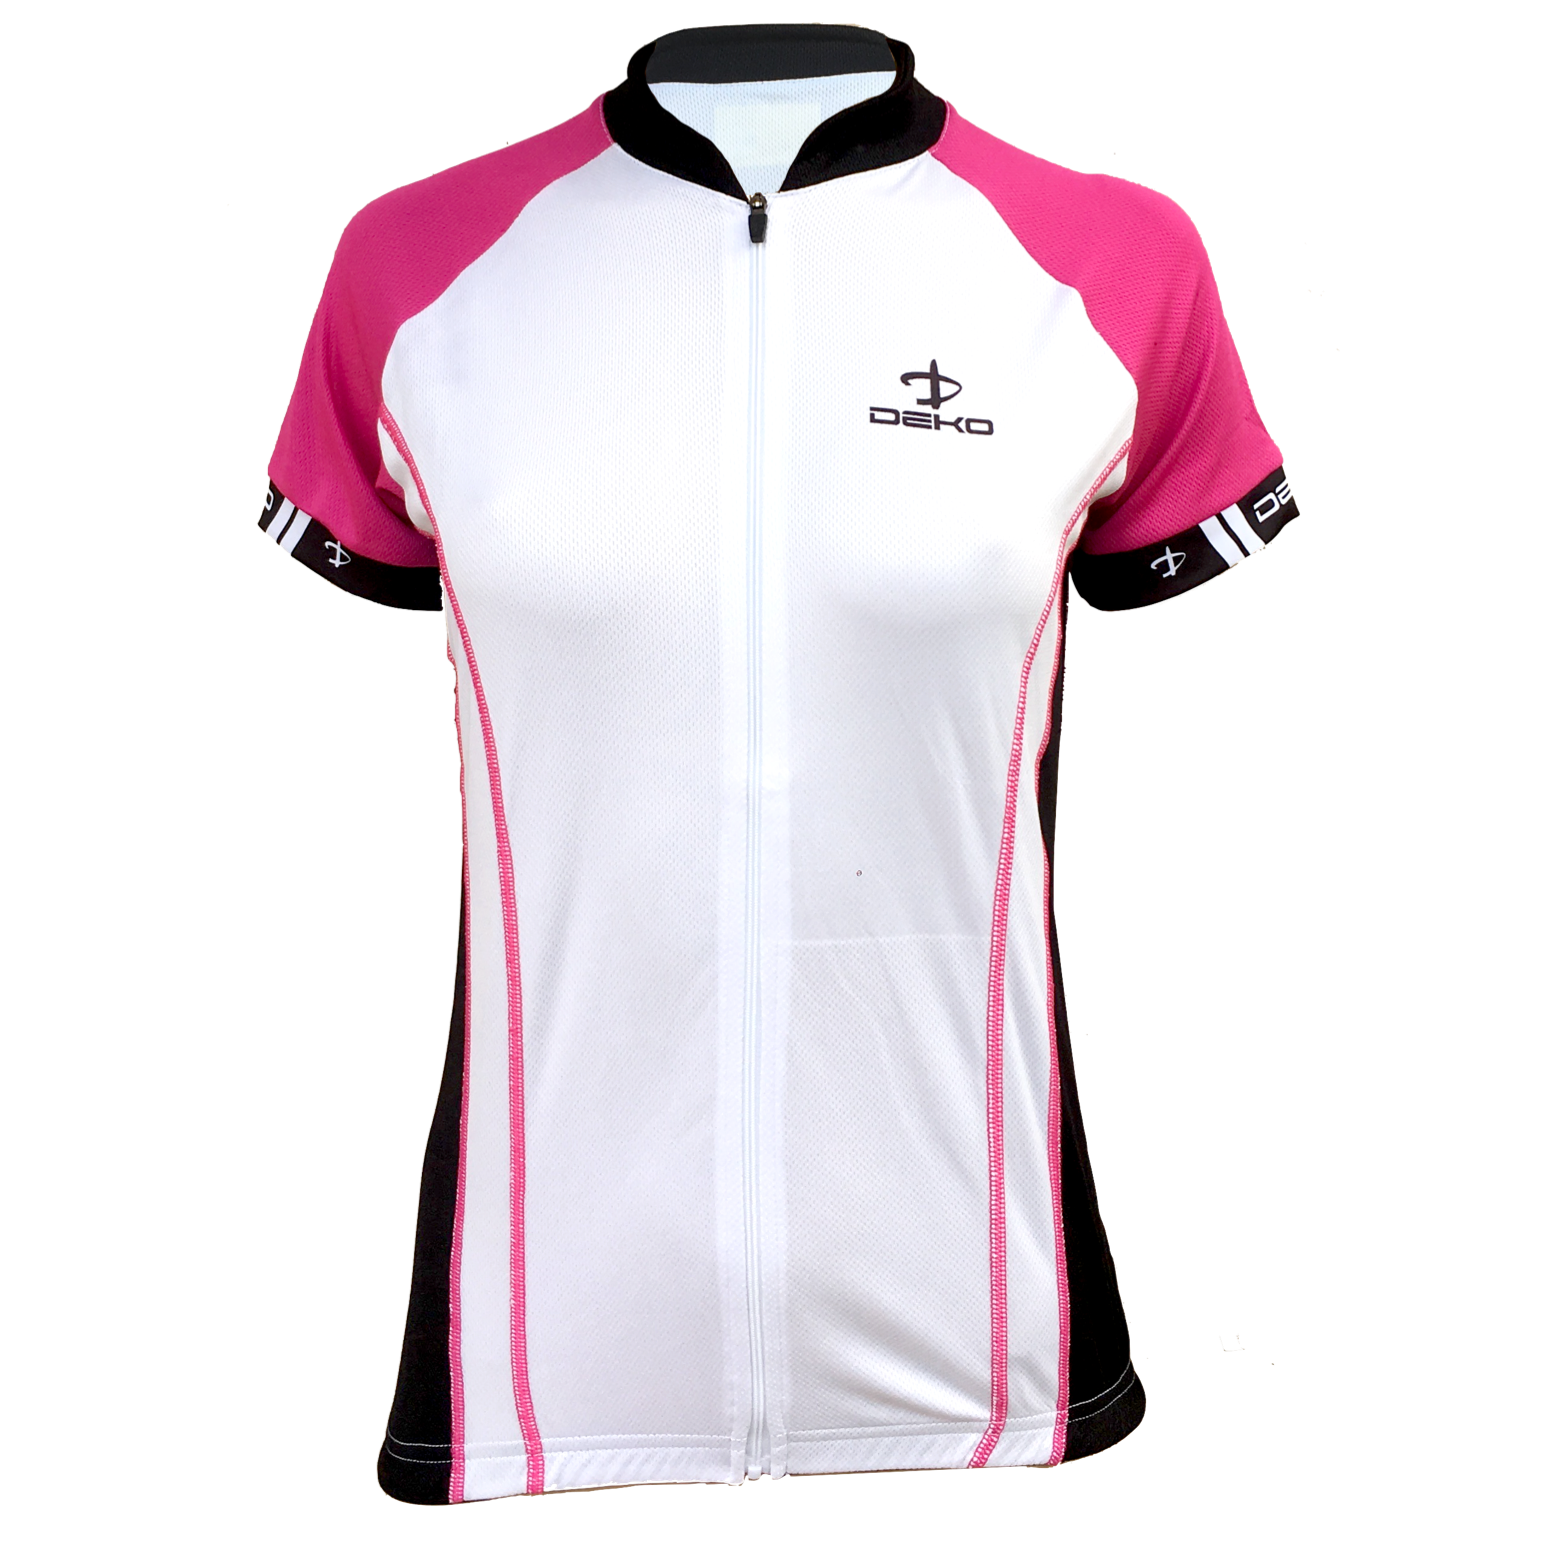 Jerseys - Deko Aspide Ladies Jersey - Large was listed for R390.00 ... f76d3d0ab